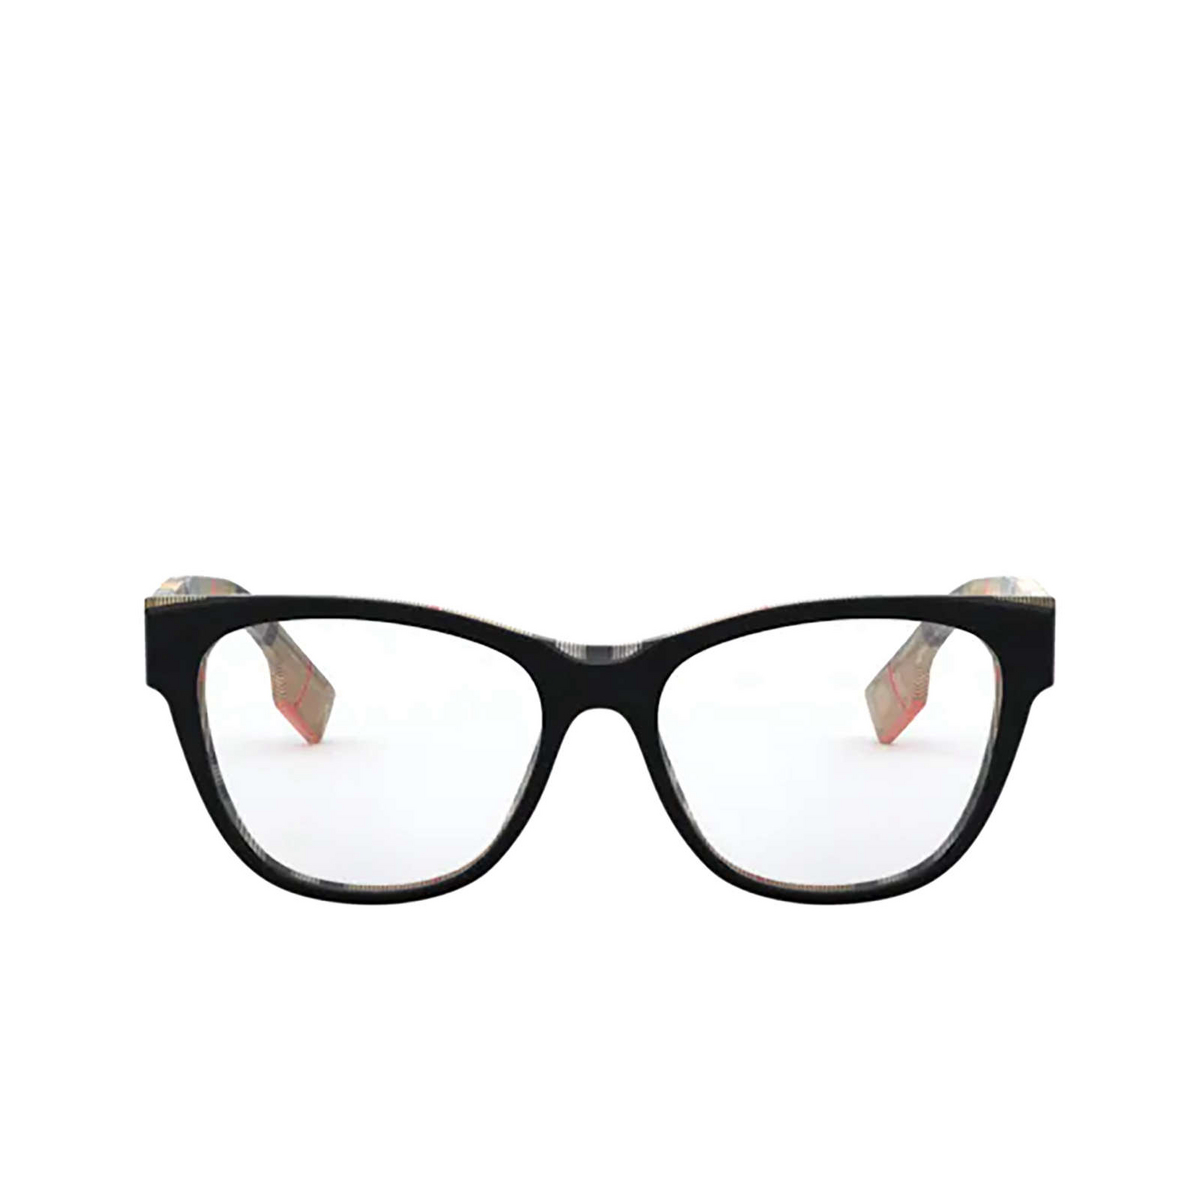 Burberry® Square Eyeglasses: BE2301 color Top Black On Vintage Check 3806 - front view.